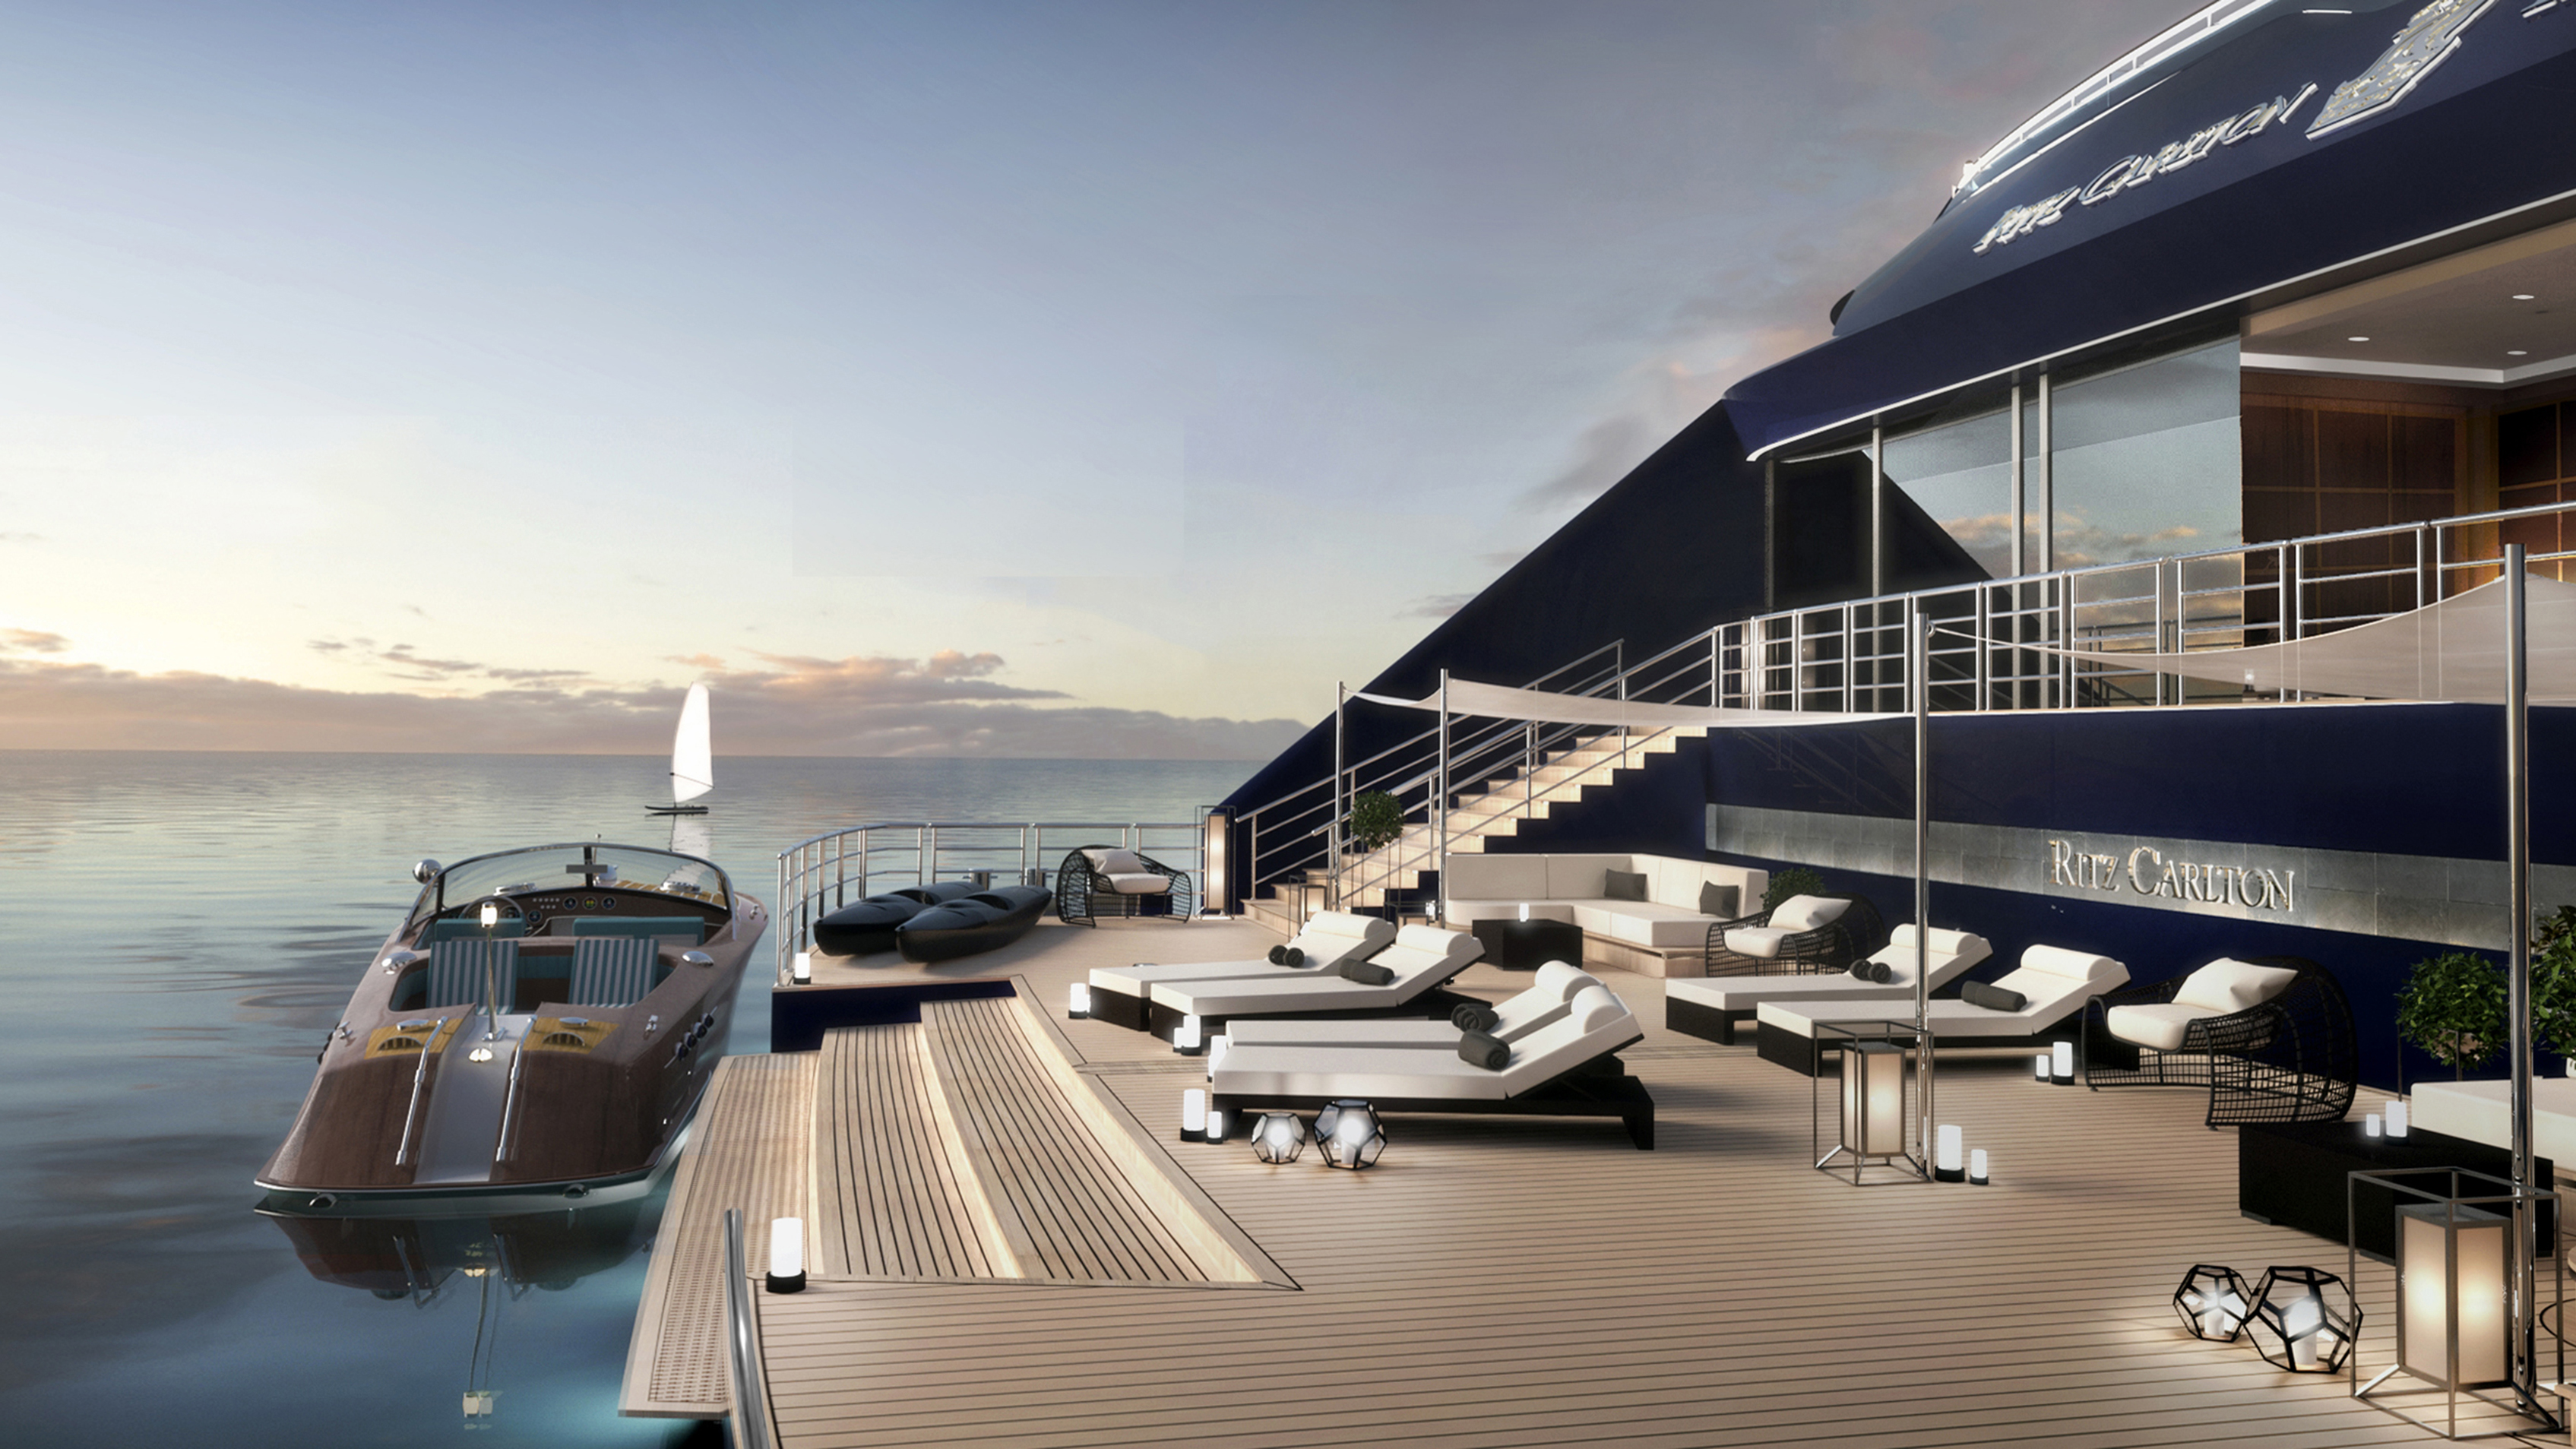 Ritz carltons new yachts will be luxury hotels at sea cnn travel